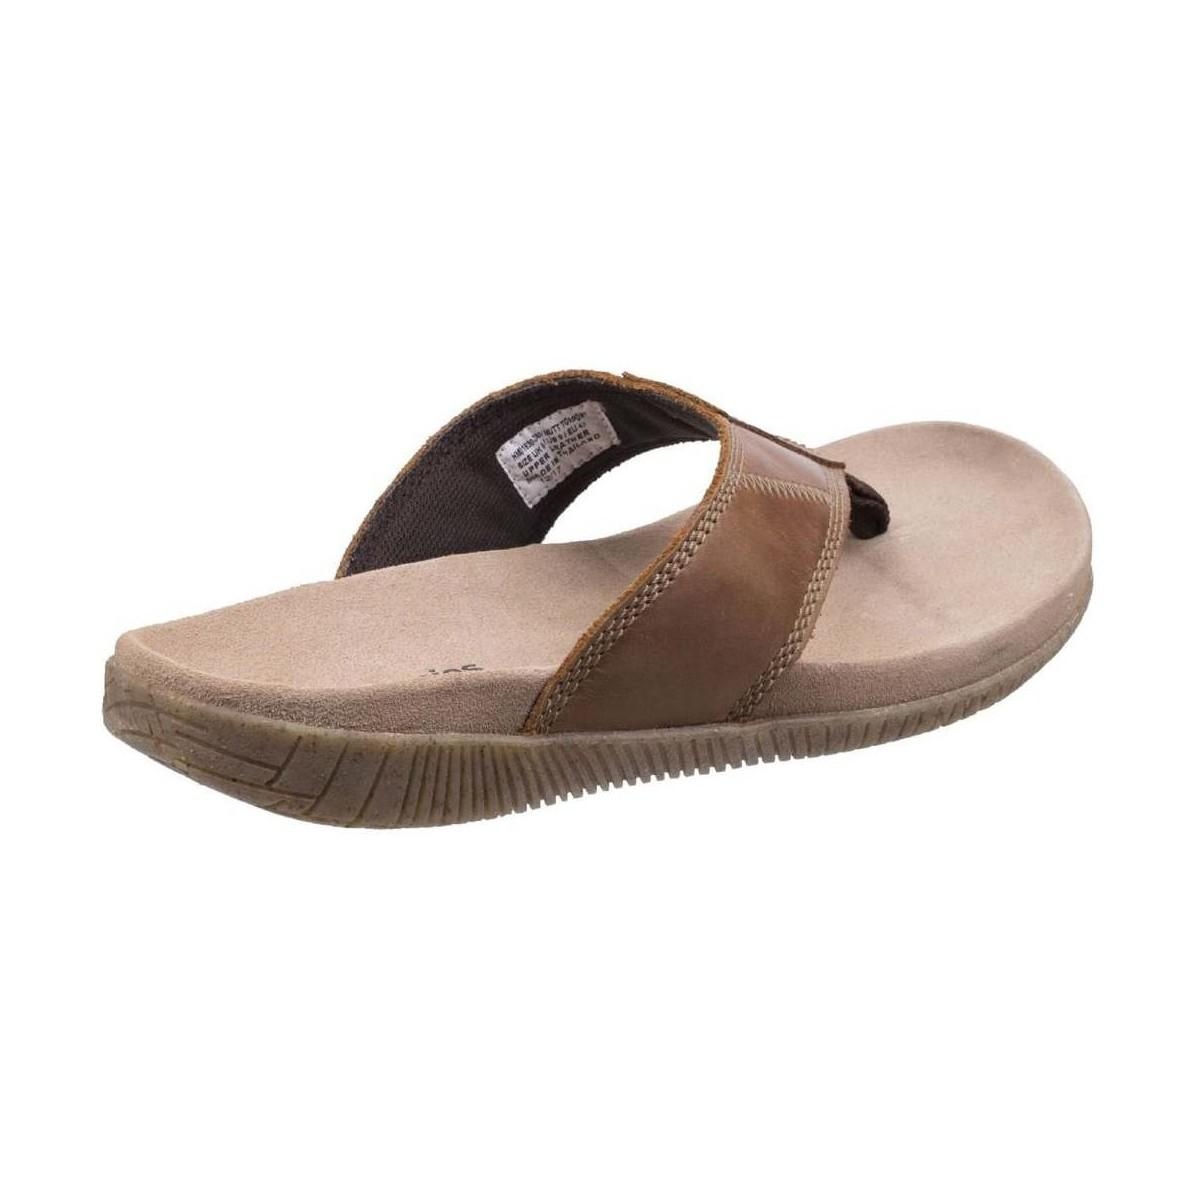 da0d5bc6883 Hush Puppies Mutt Toe Post Mens Sandals Men s Flip Flops   Sandals ...